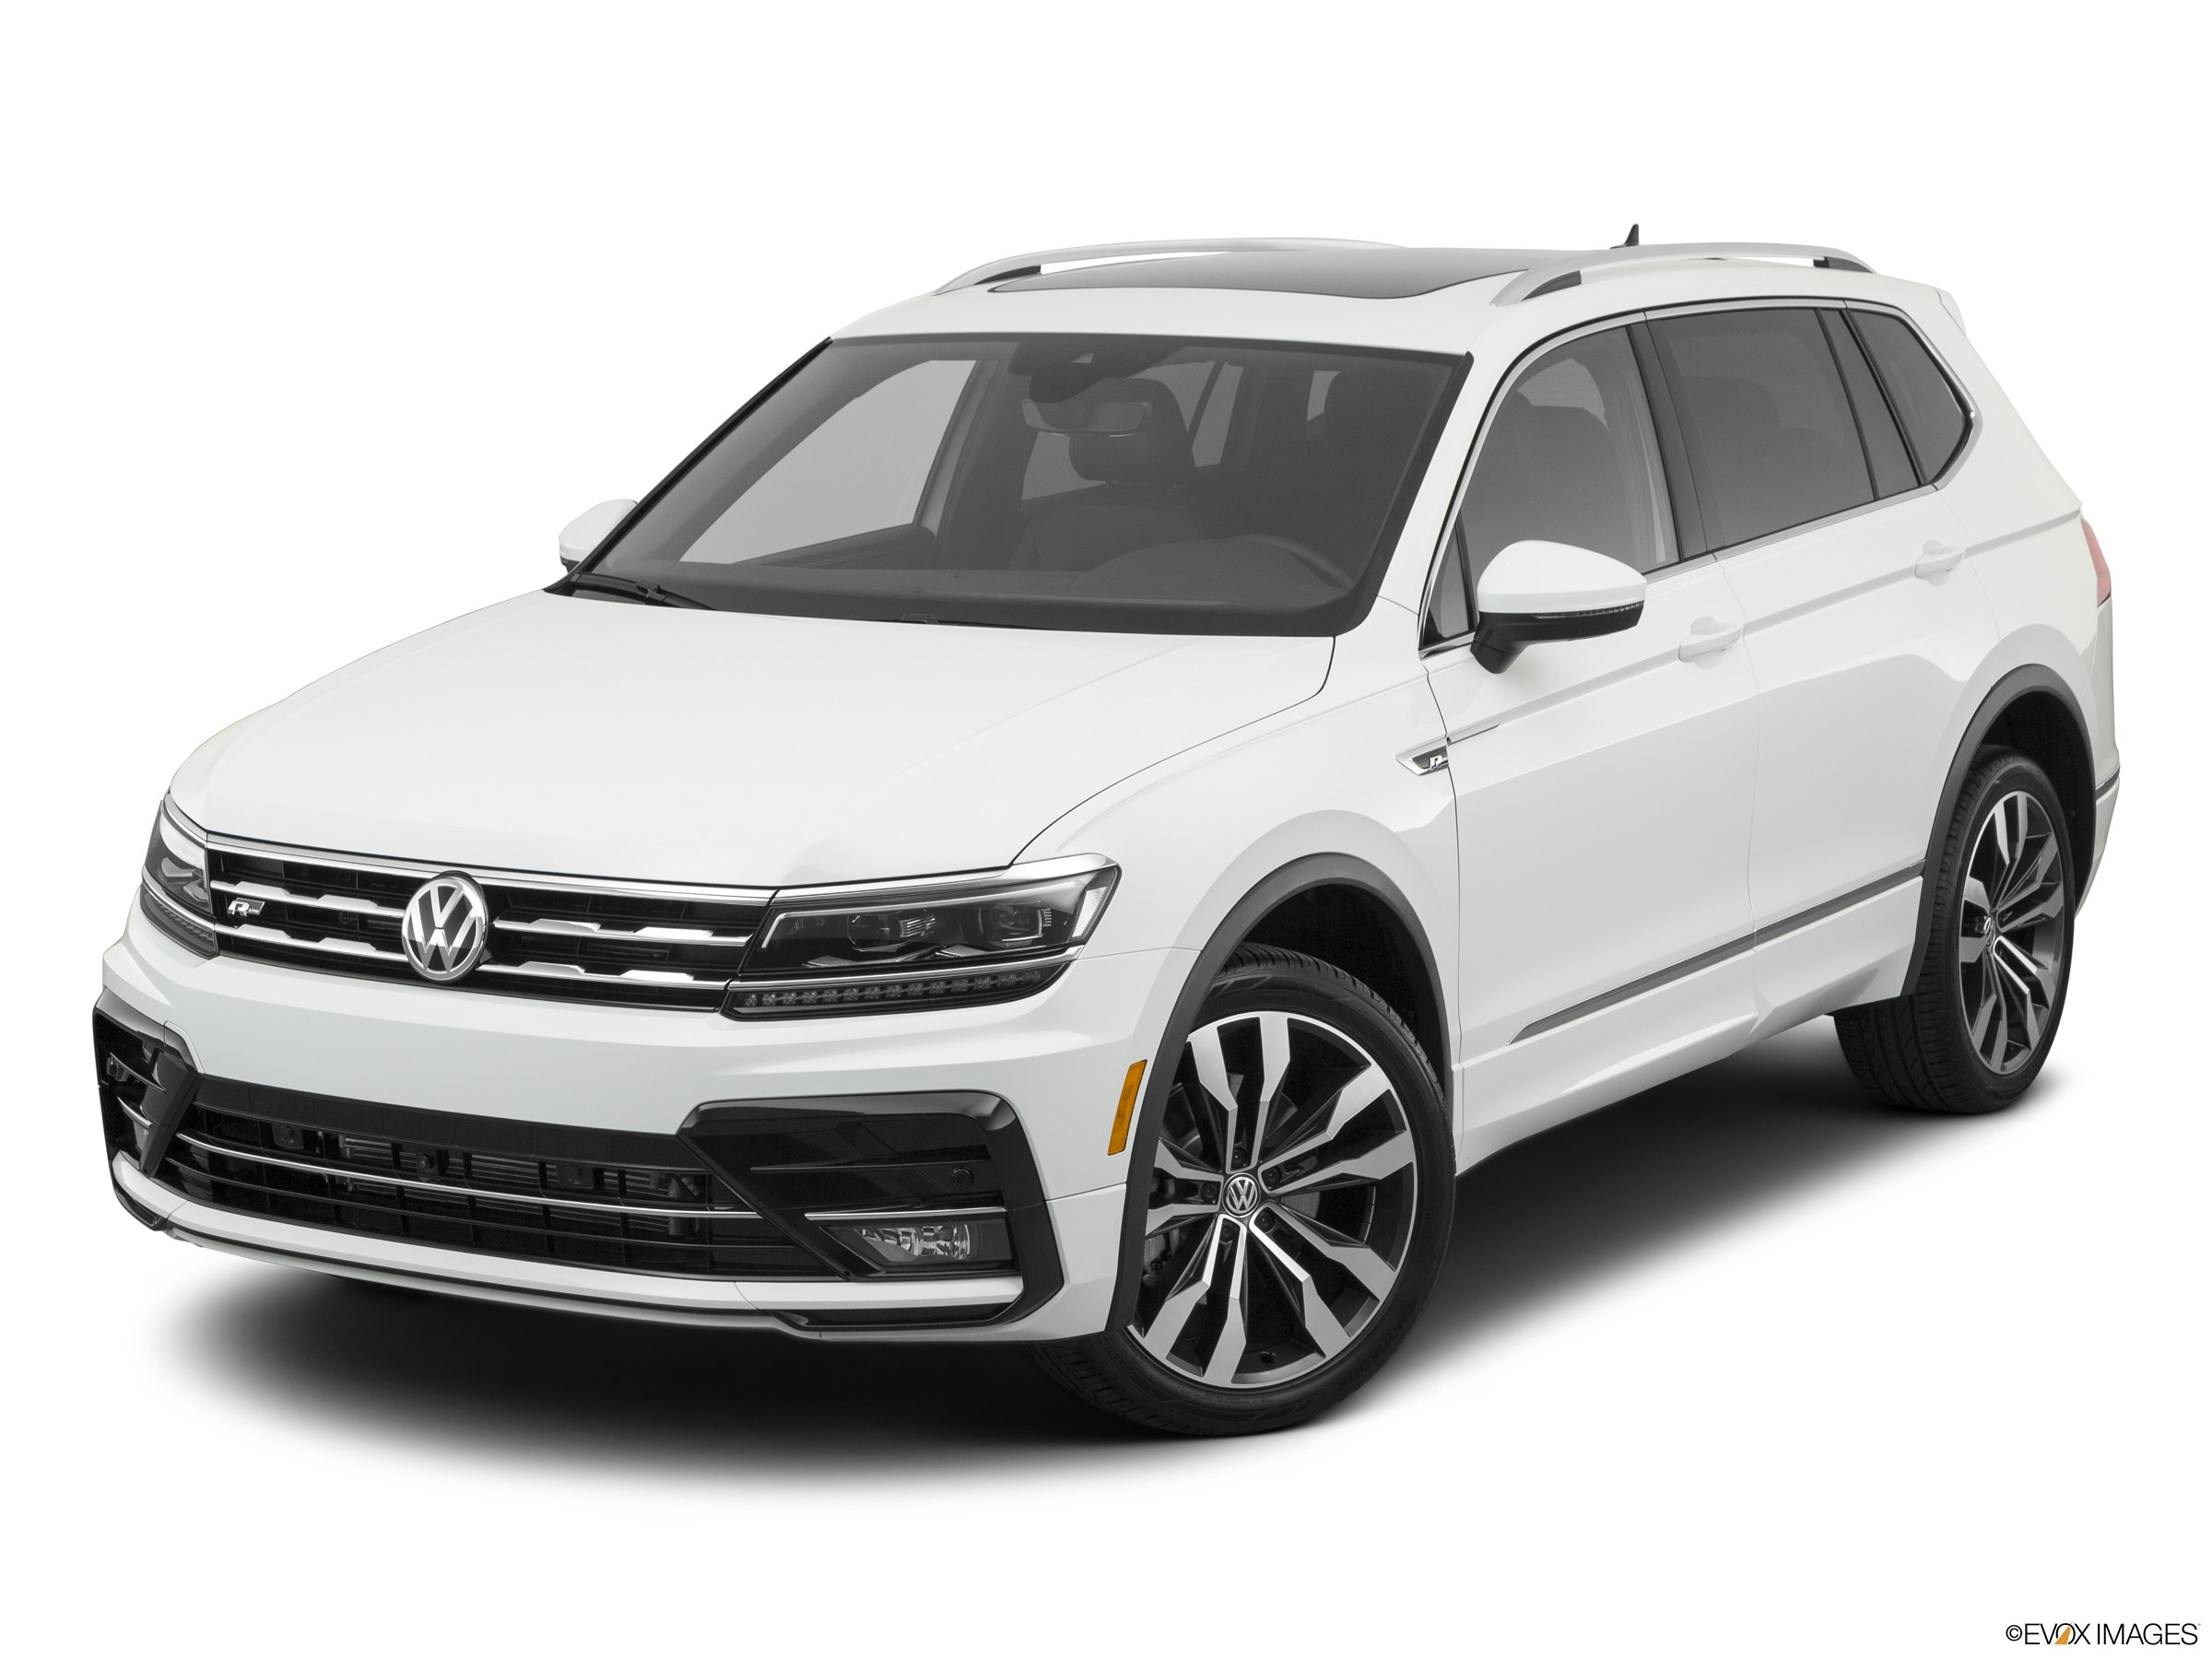 2020 Volkswagen Tiguan SEL Premium R-Line with 4MOTION AWD CUV